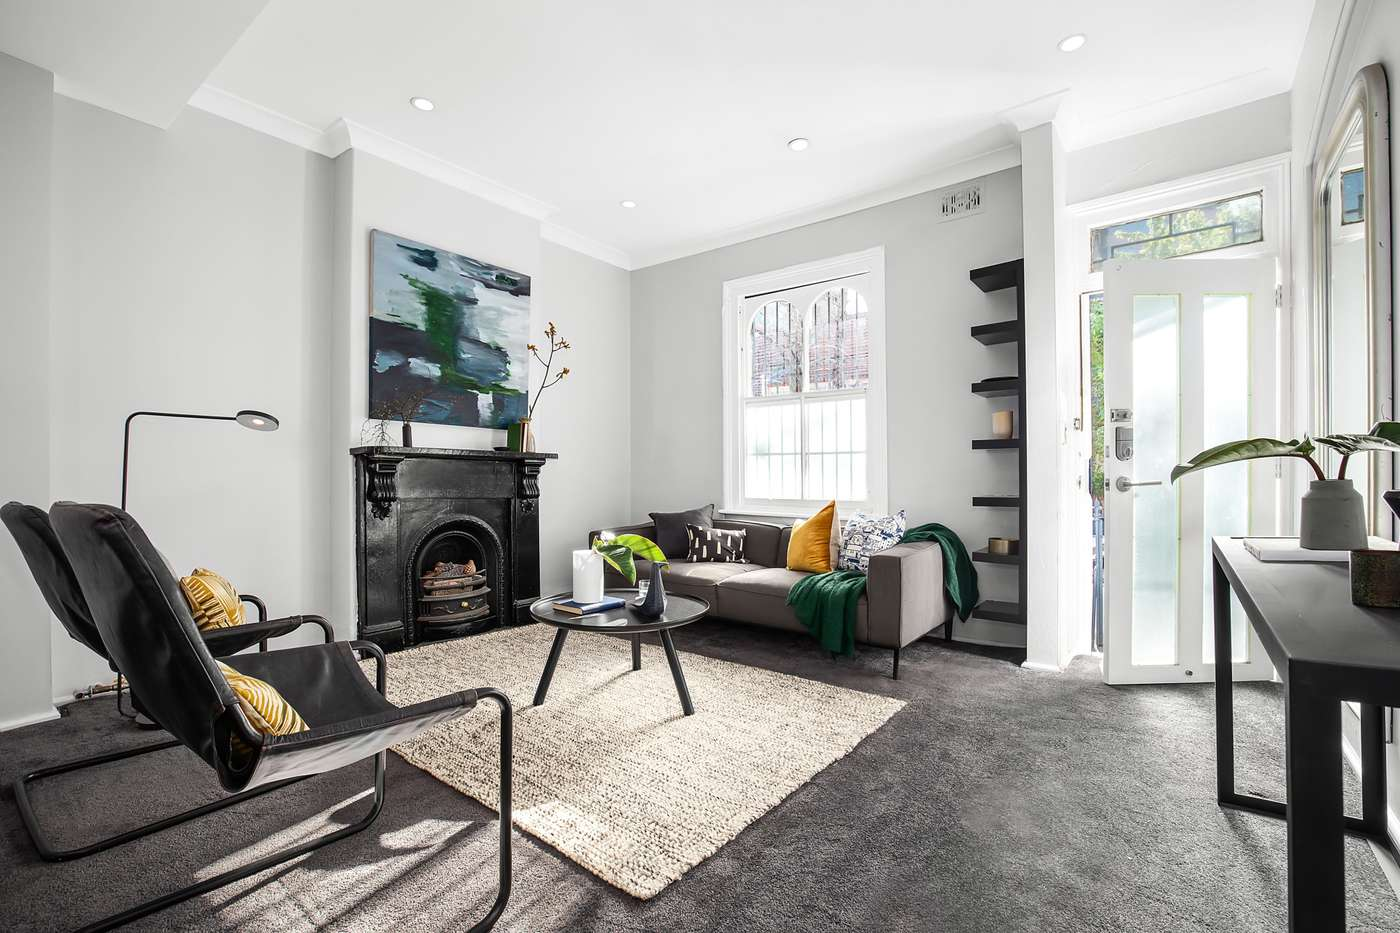 Main view of Homely house listing, 194 Commonwealth Street, Surry Hills, NSW 2010